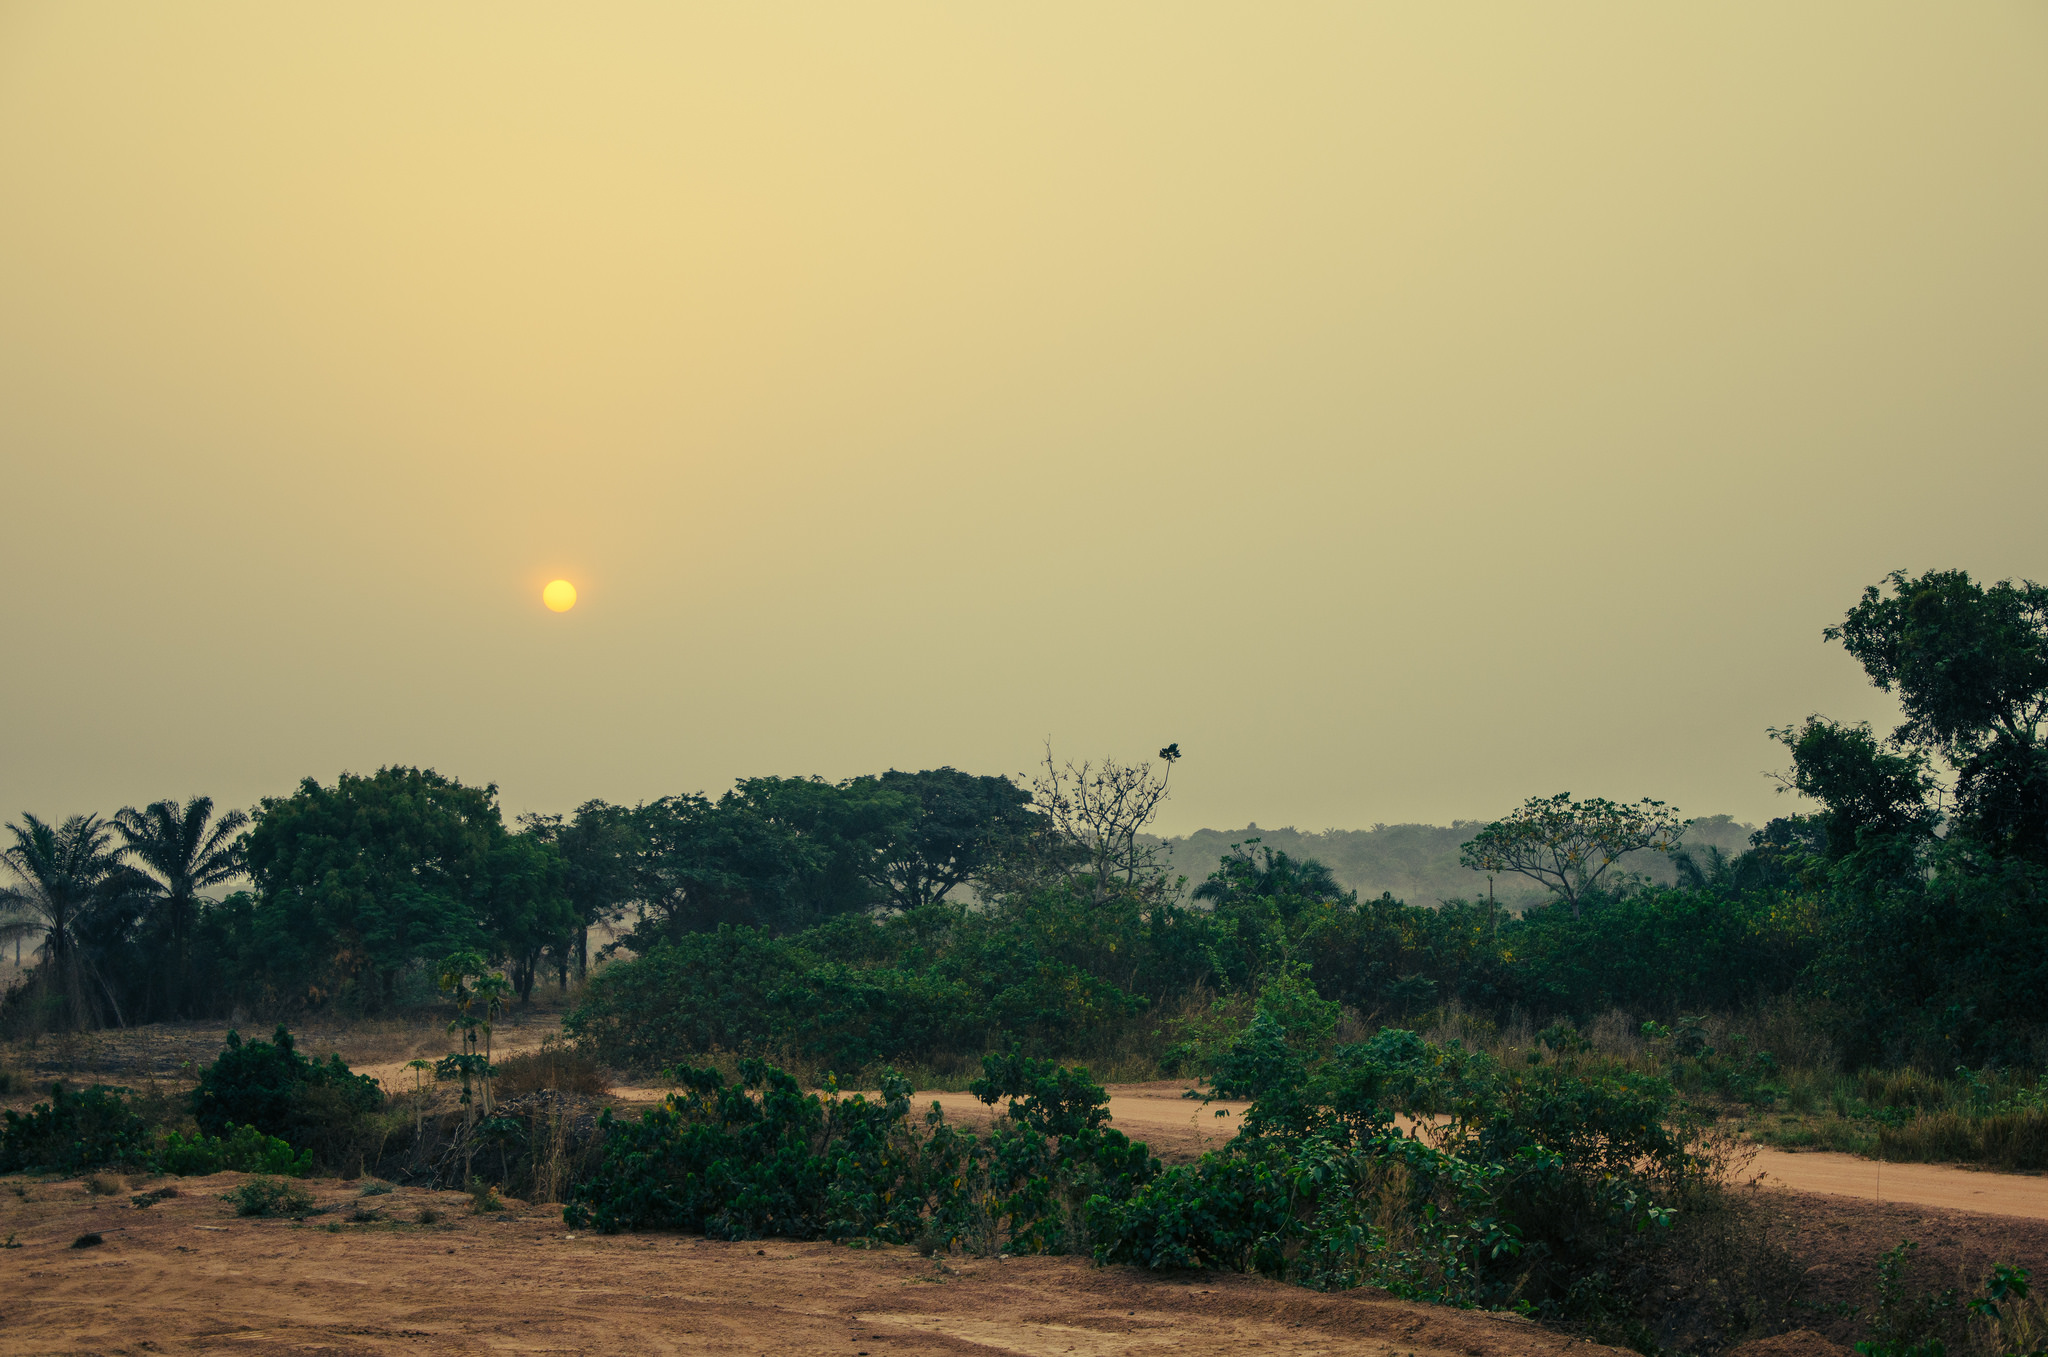 The Jigawa solar project will have an output of around 96GWh per year. Flickr/canonim